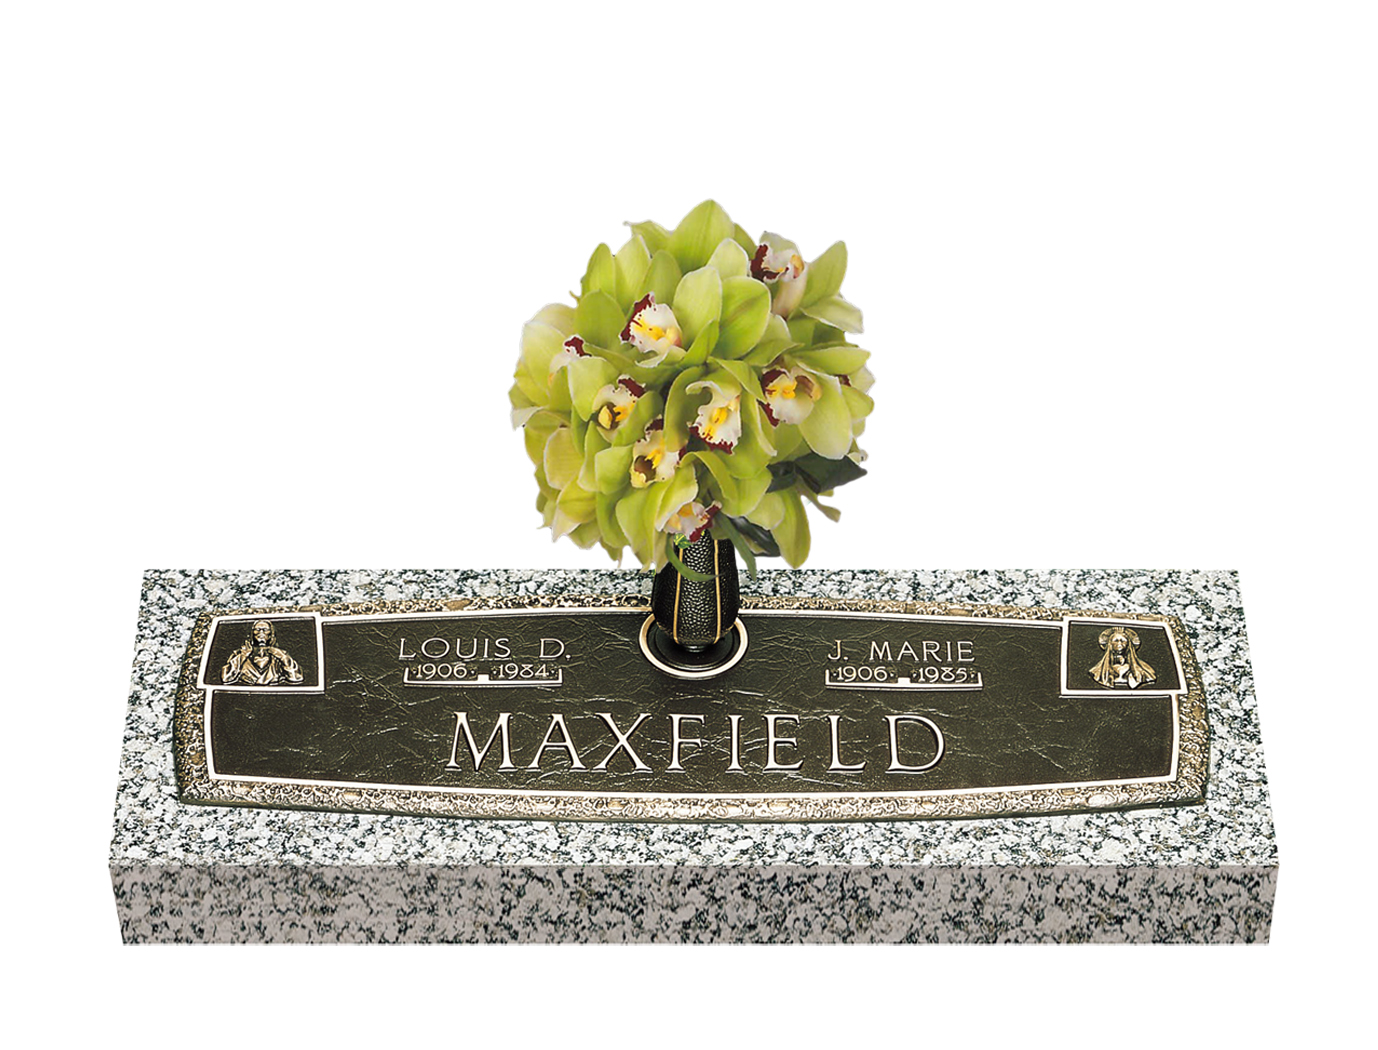 Companion bronze grave markers lovemarkers arc of tribute with vase reviewsmspy